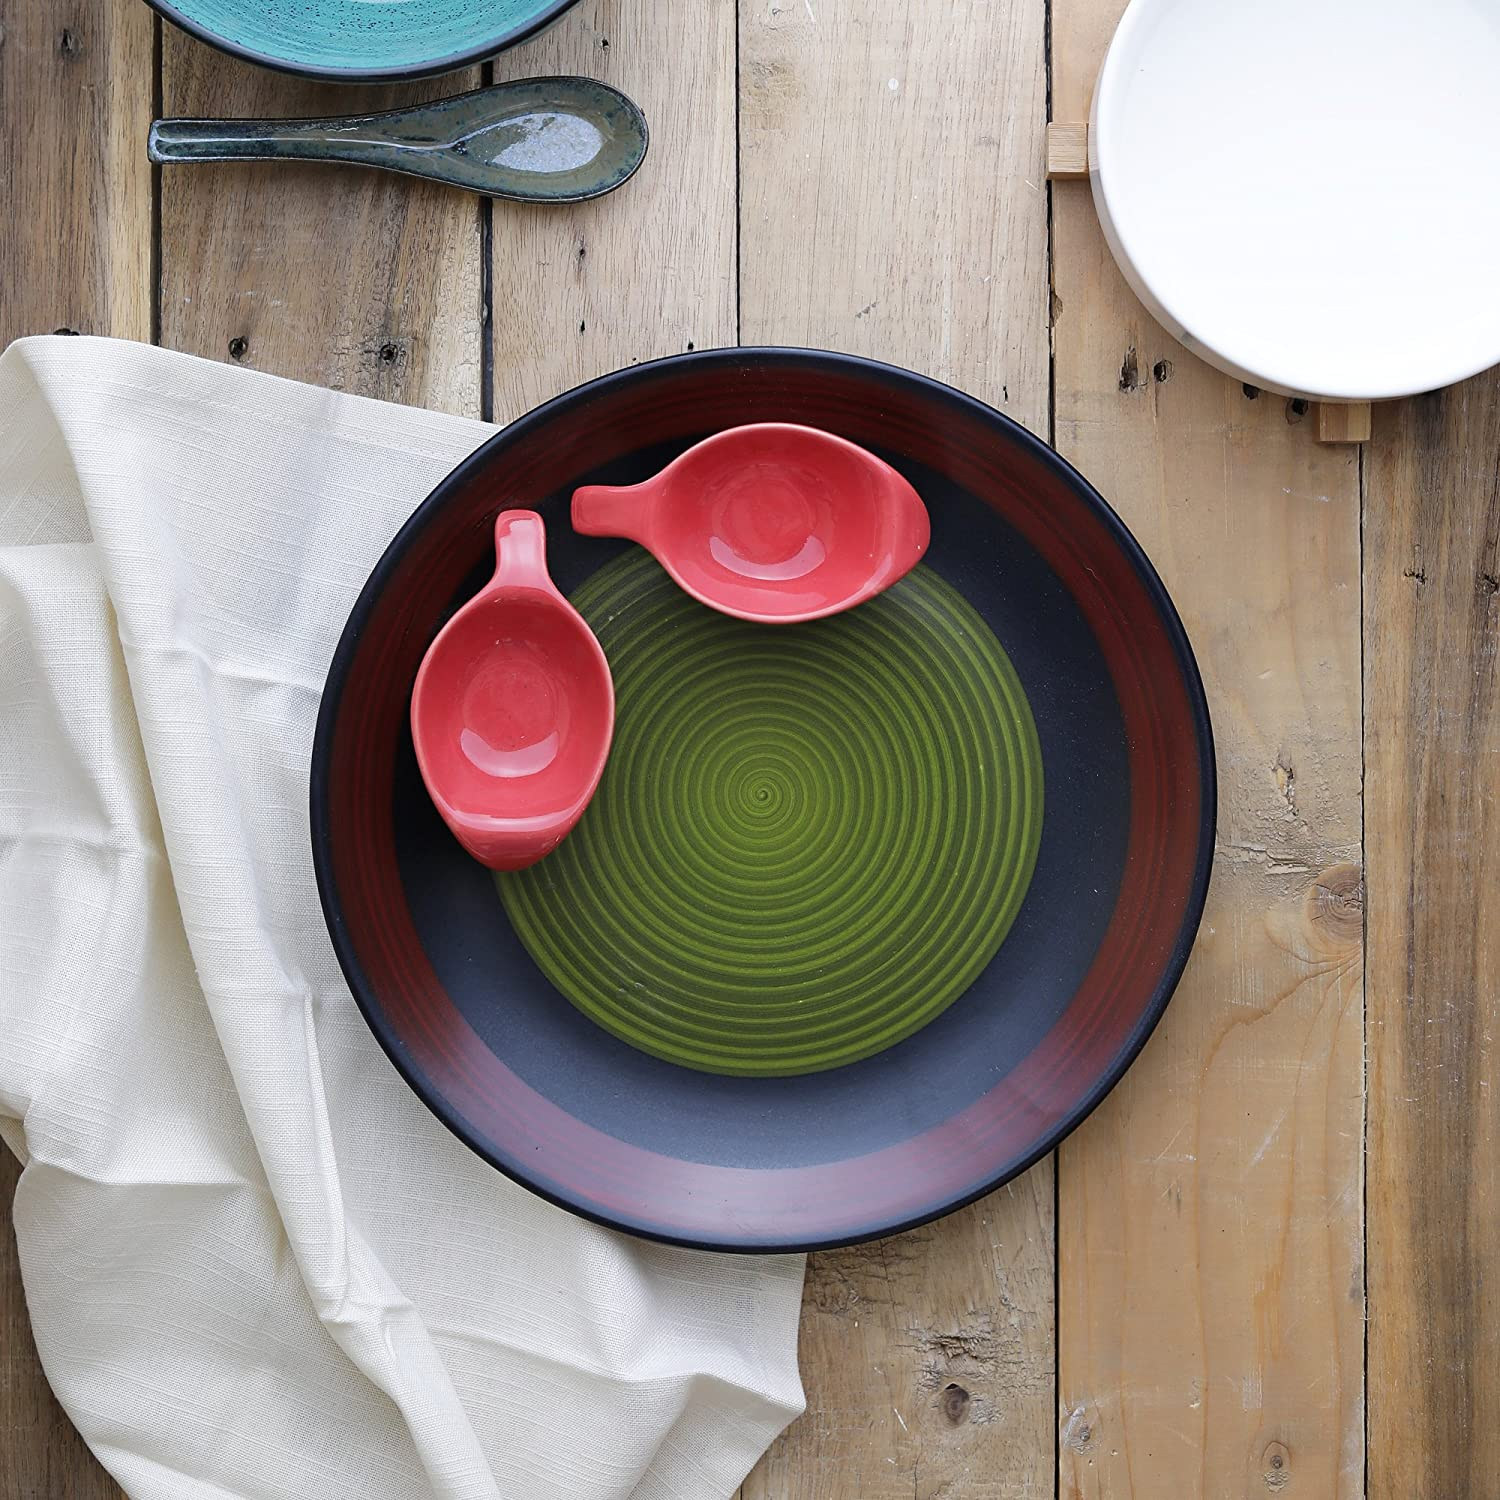 Home And Decor Ceramic Designer Platter With Attached Bowls